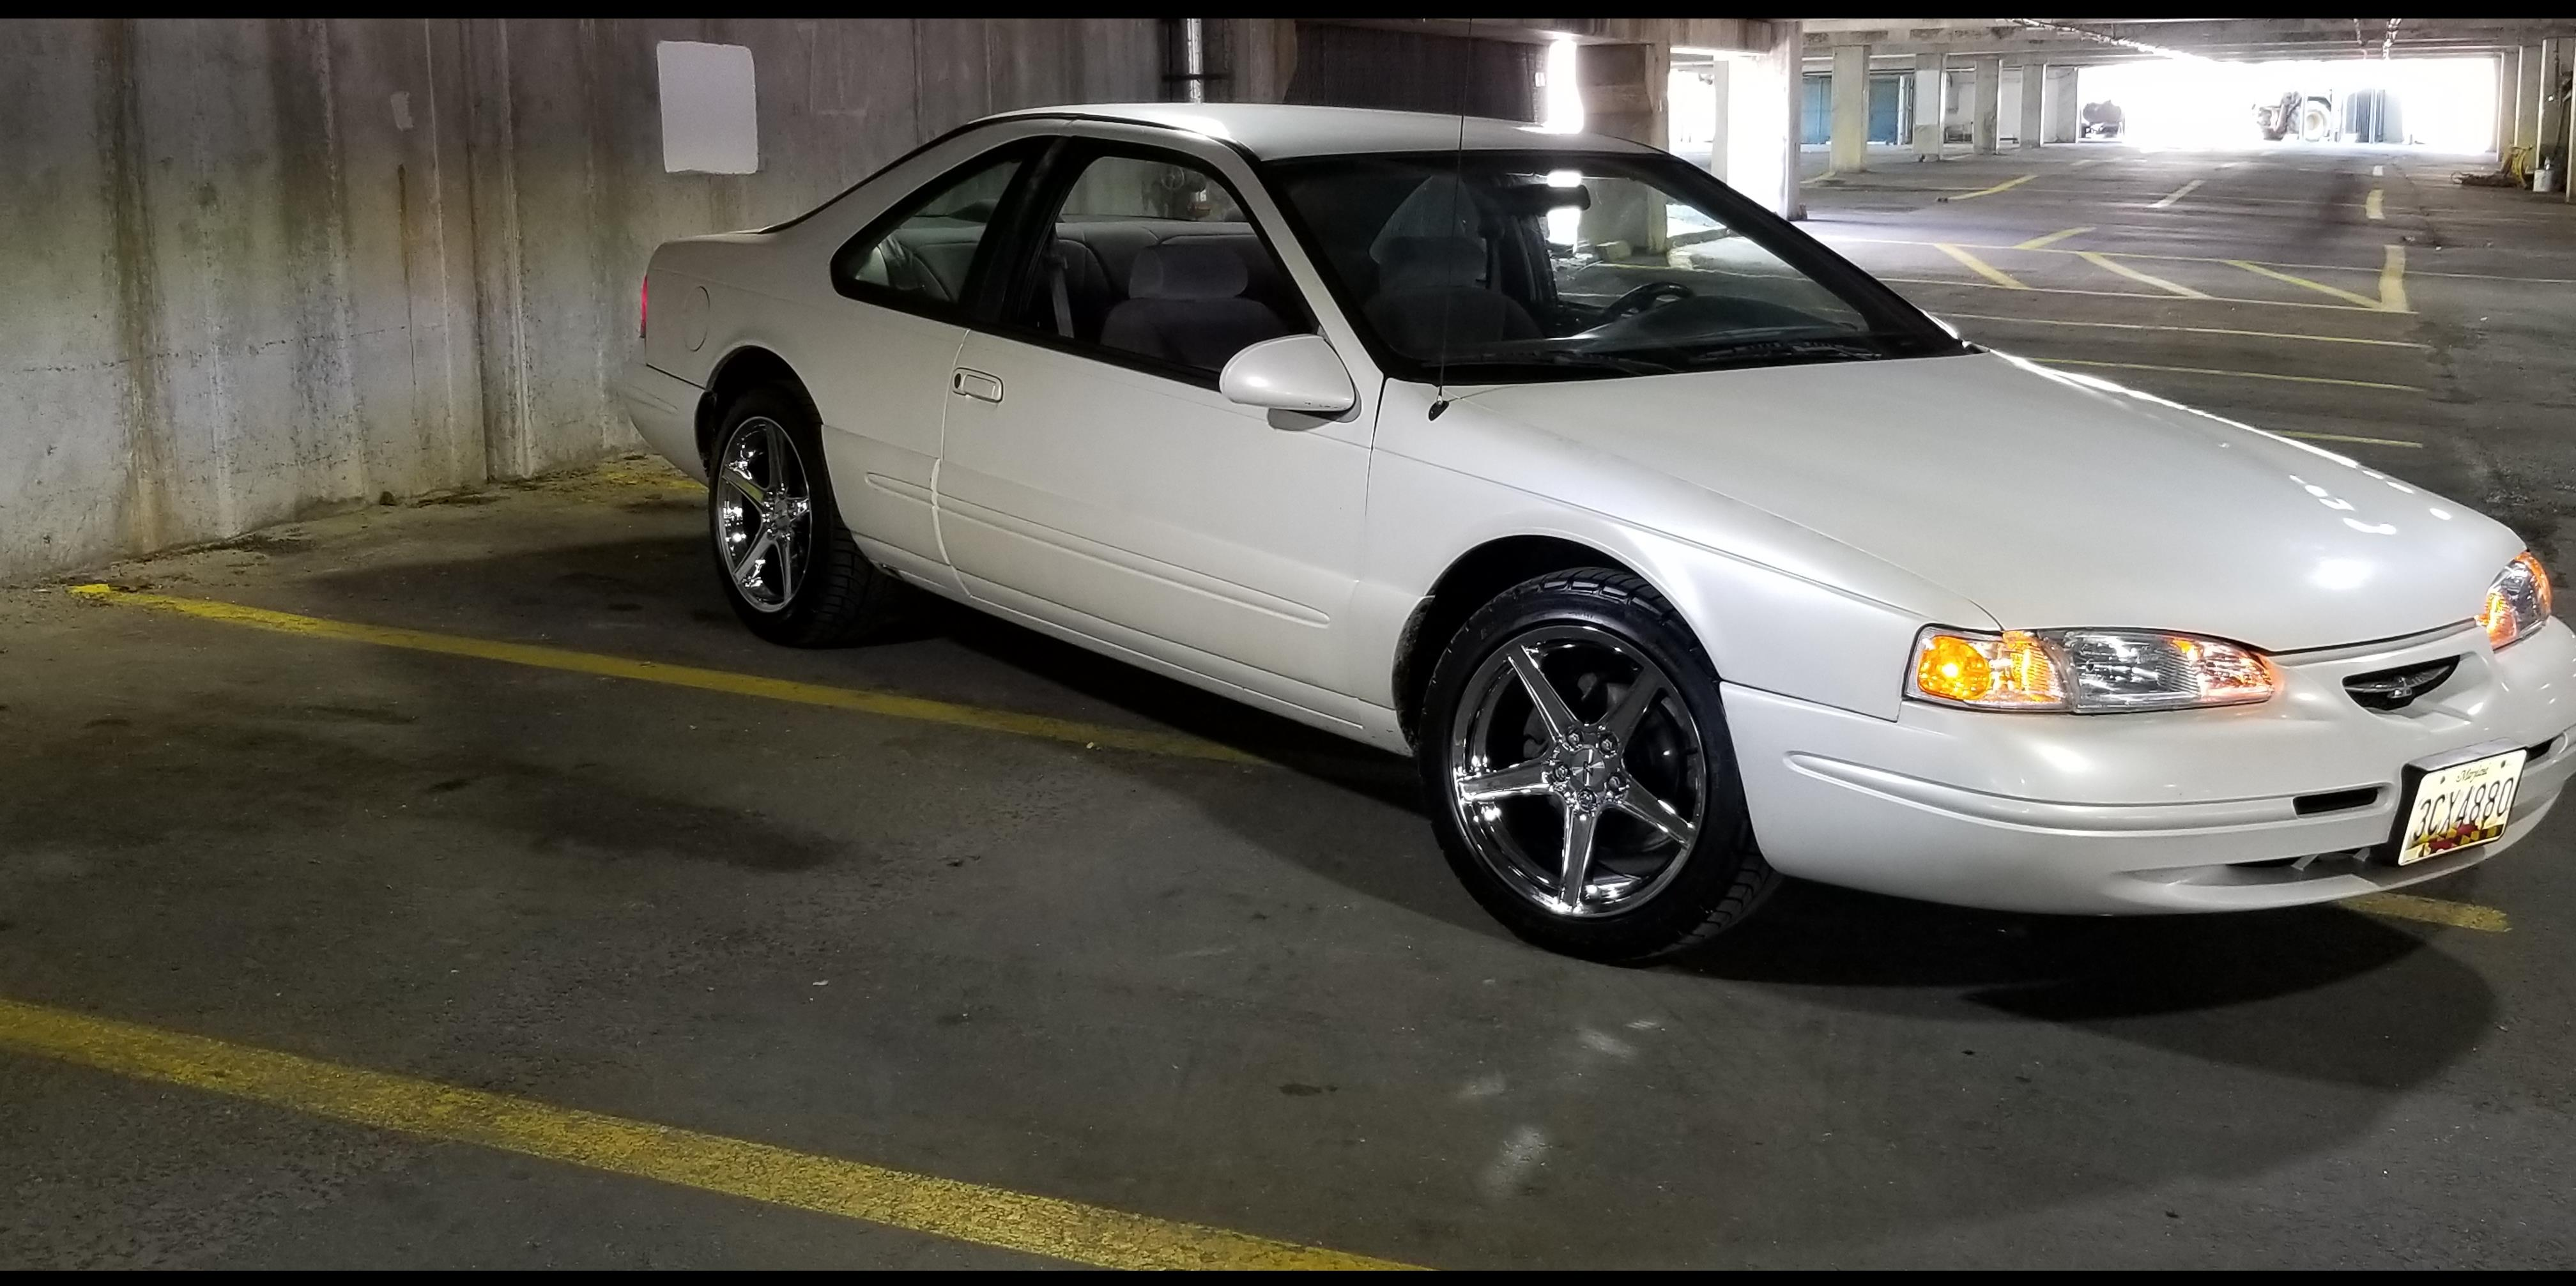 WilliamsT1221 1996 Ford Thunderbird